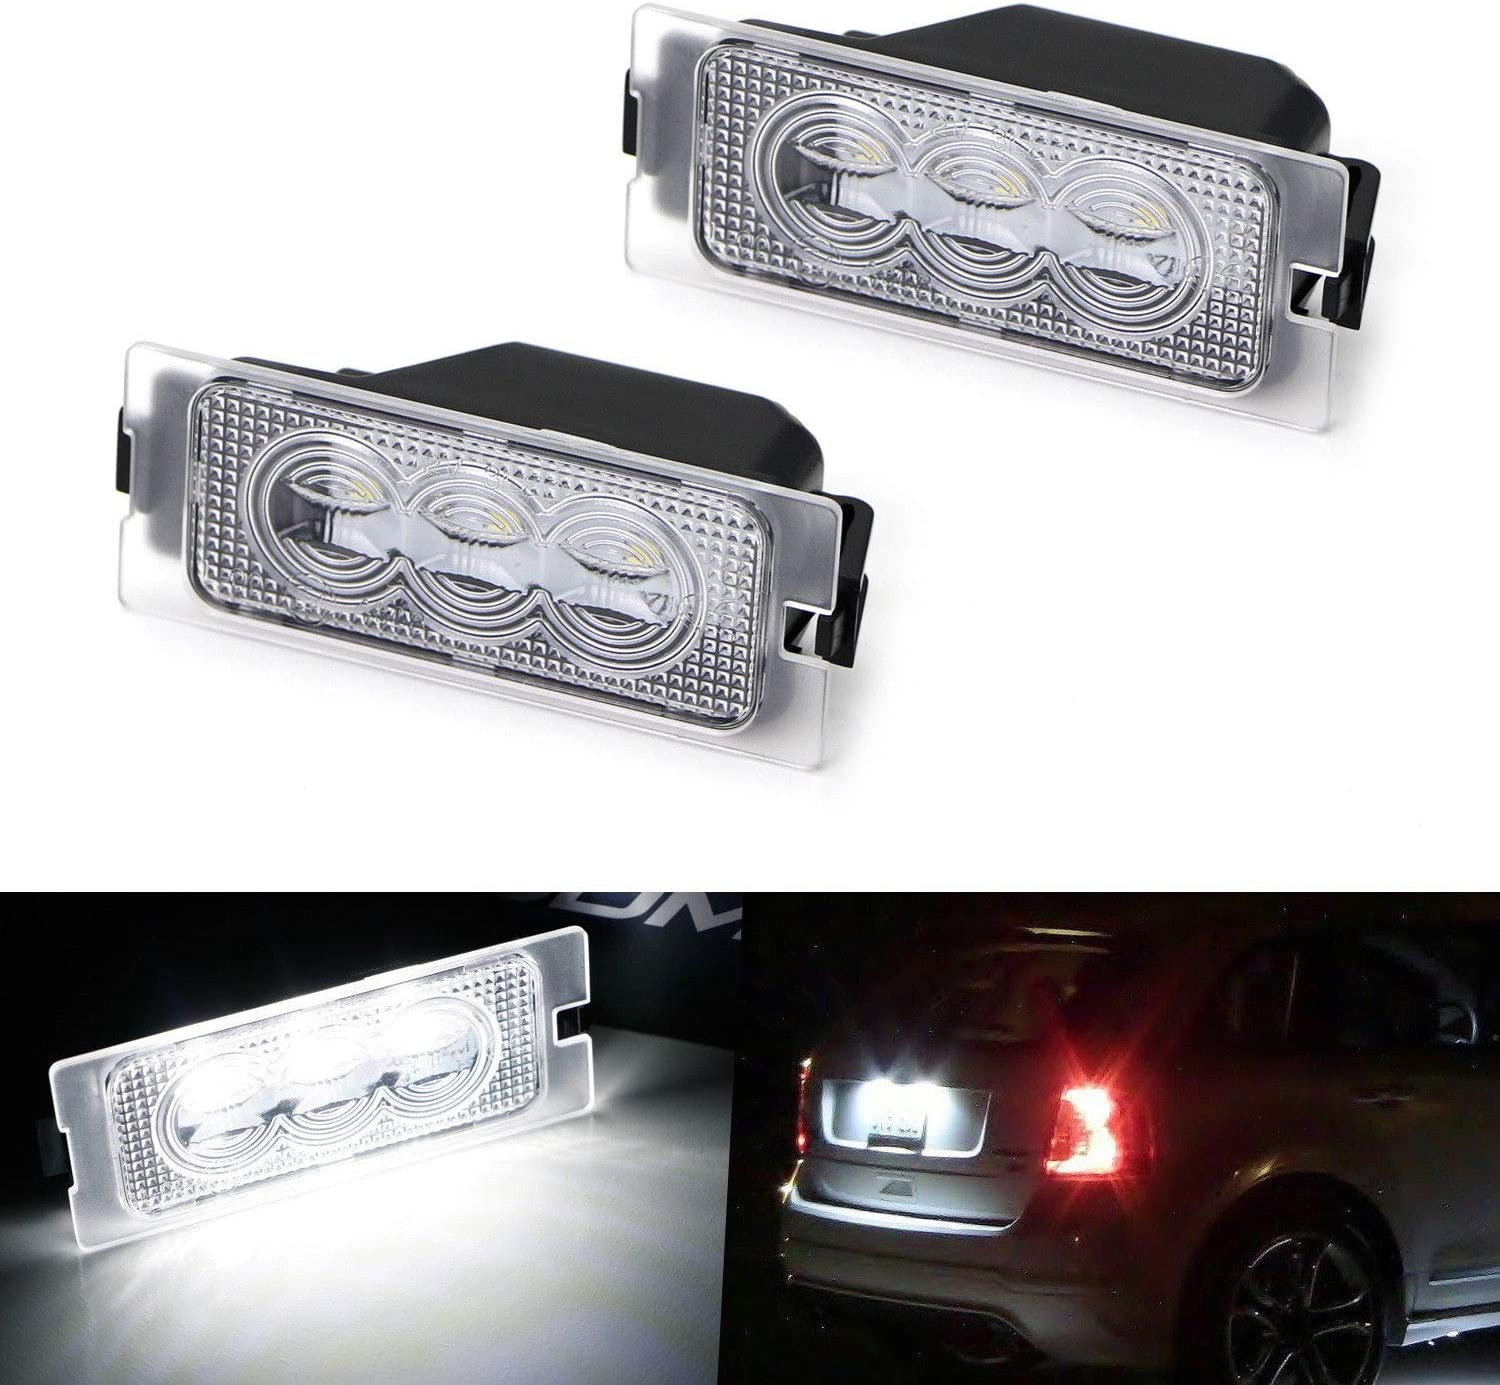 2X White LED License Plate Light Lamp Assembly Replacing OEM for Escape SUVs